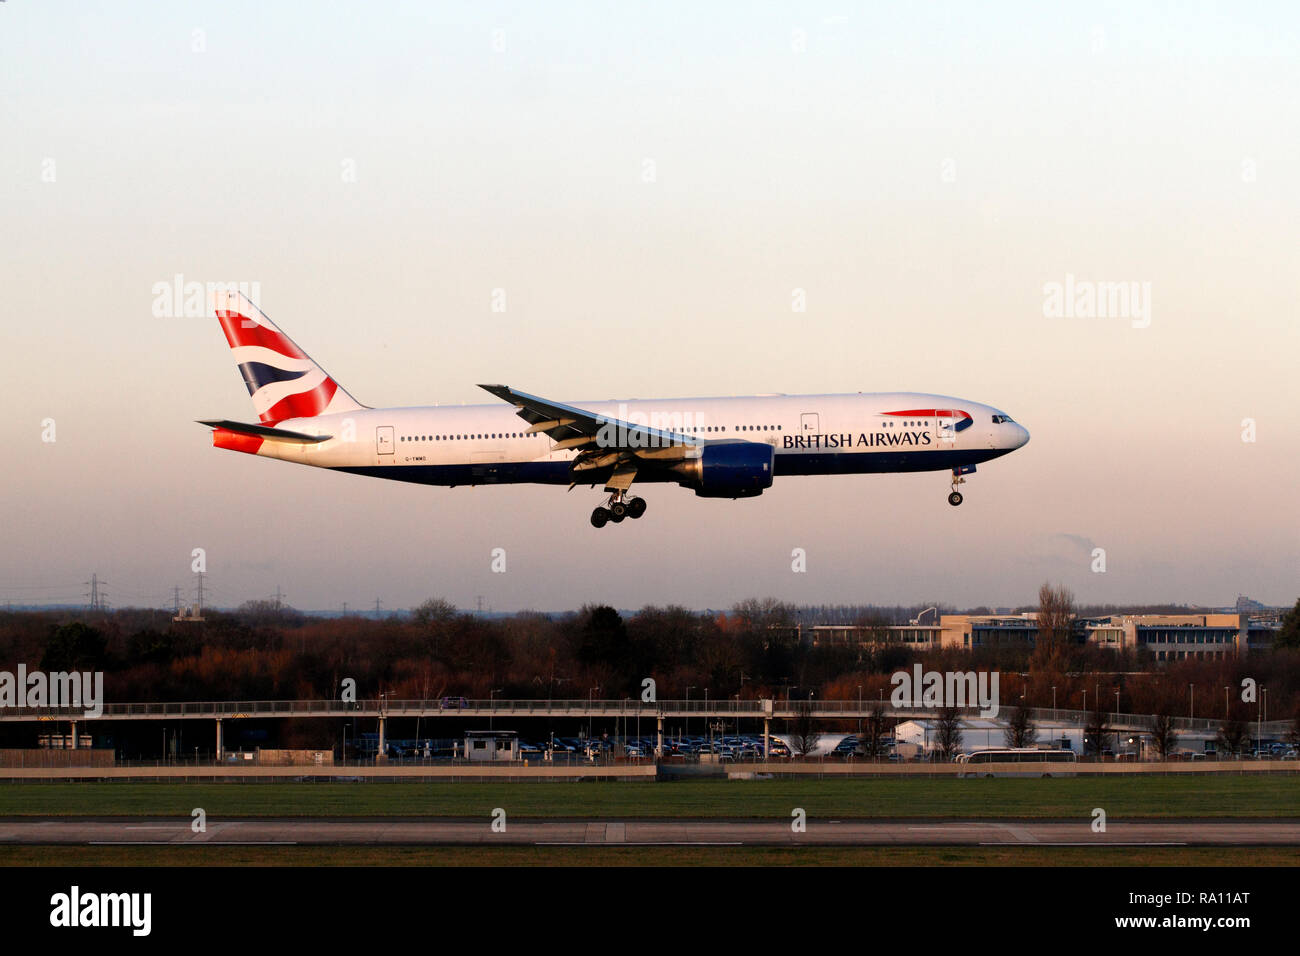 Boeing 777-236 BA, BRITISH AIRWAYS twin-engined turbofan airliner landing at Terminal 5 Heathrow airport, London UK. - Stock Image